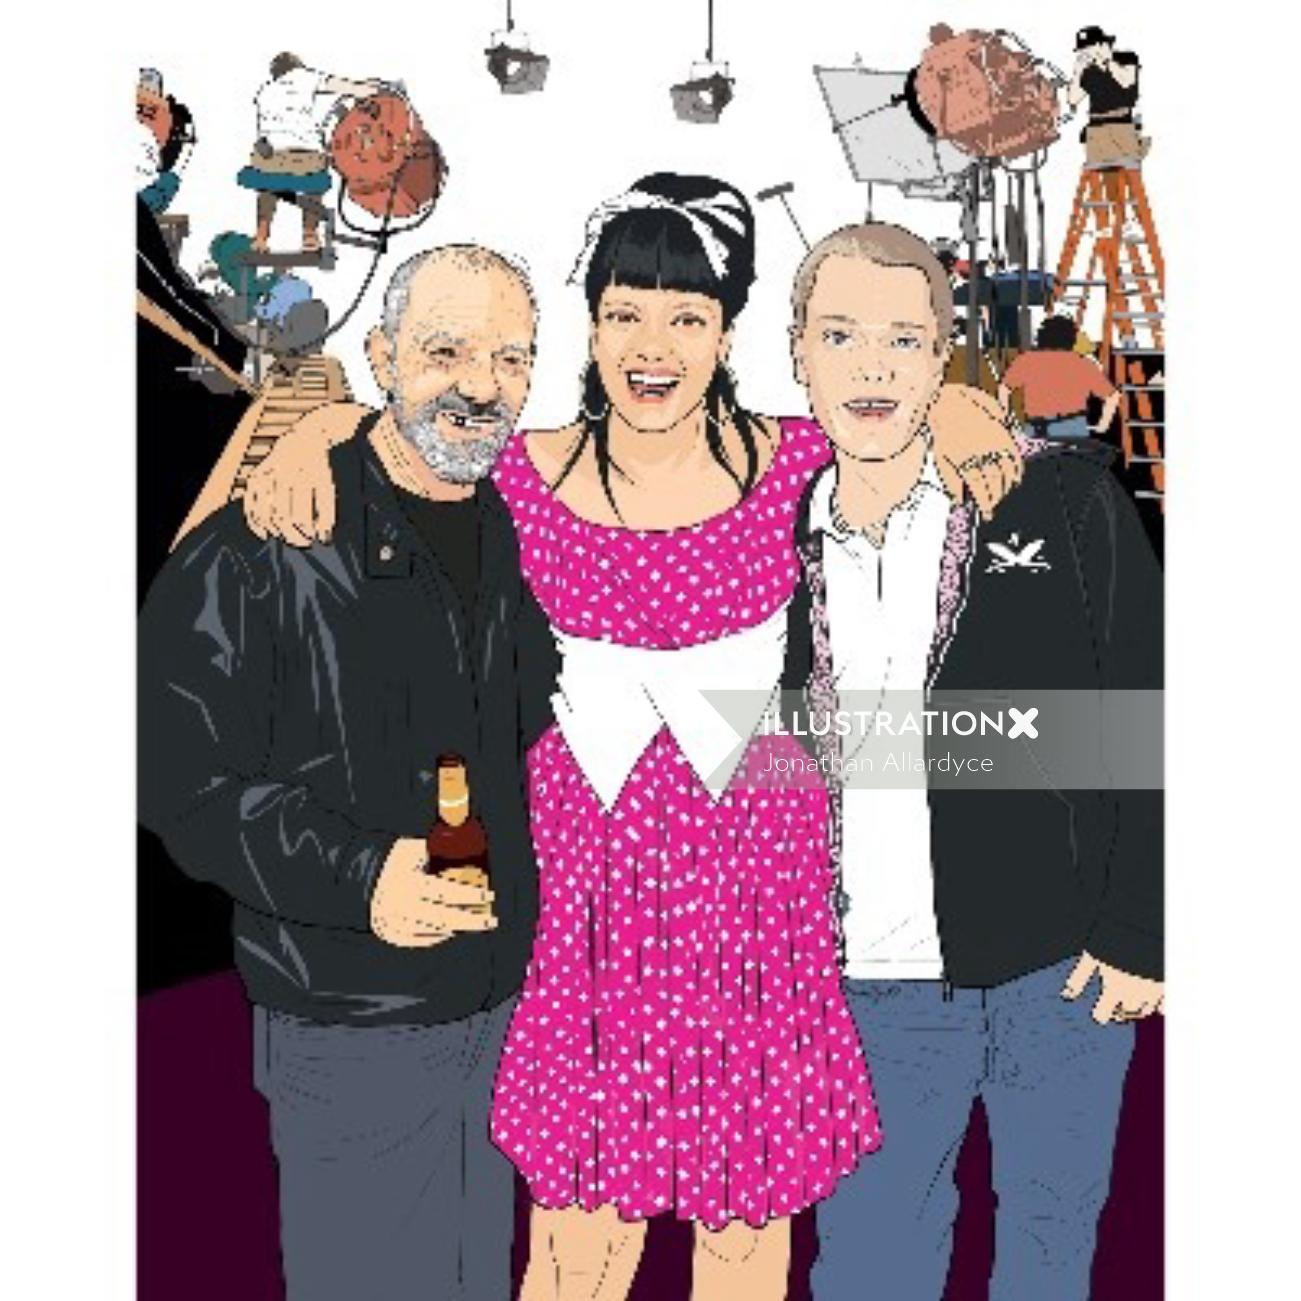 Lily Allen for Zest magazine - An illustration by Jonathan Allardyce